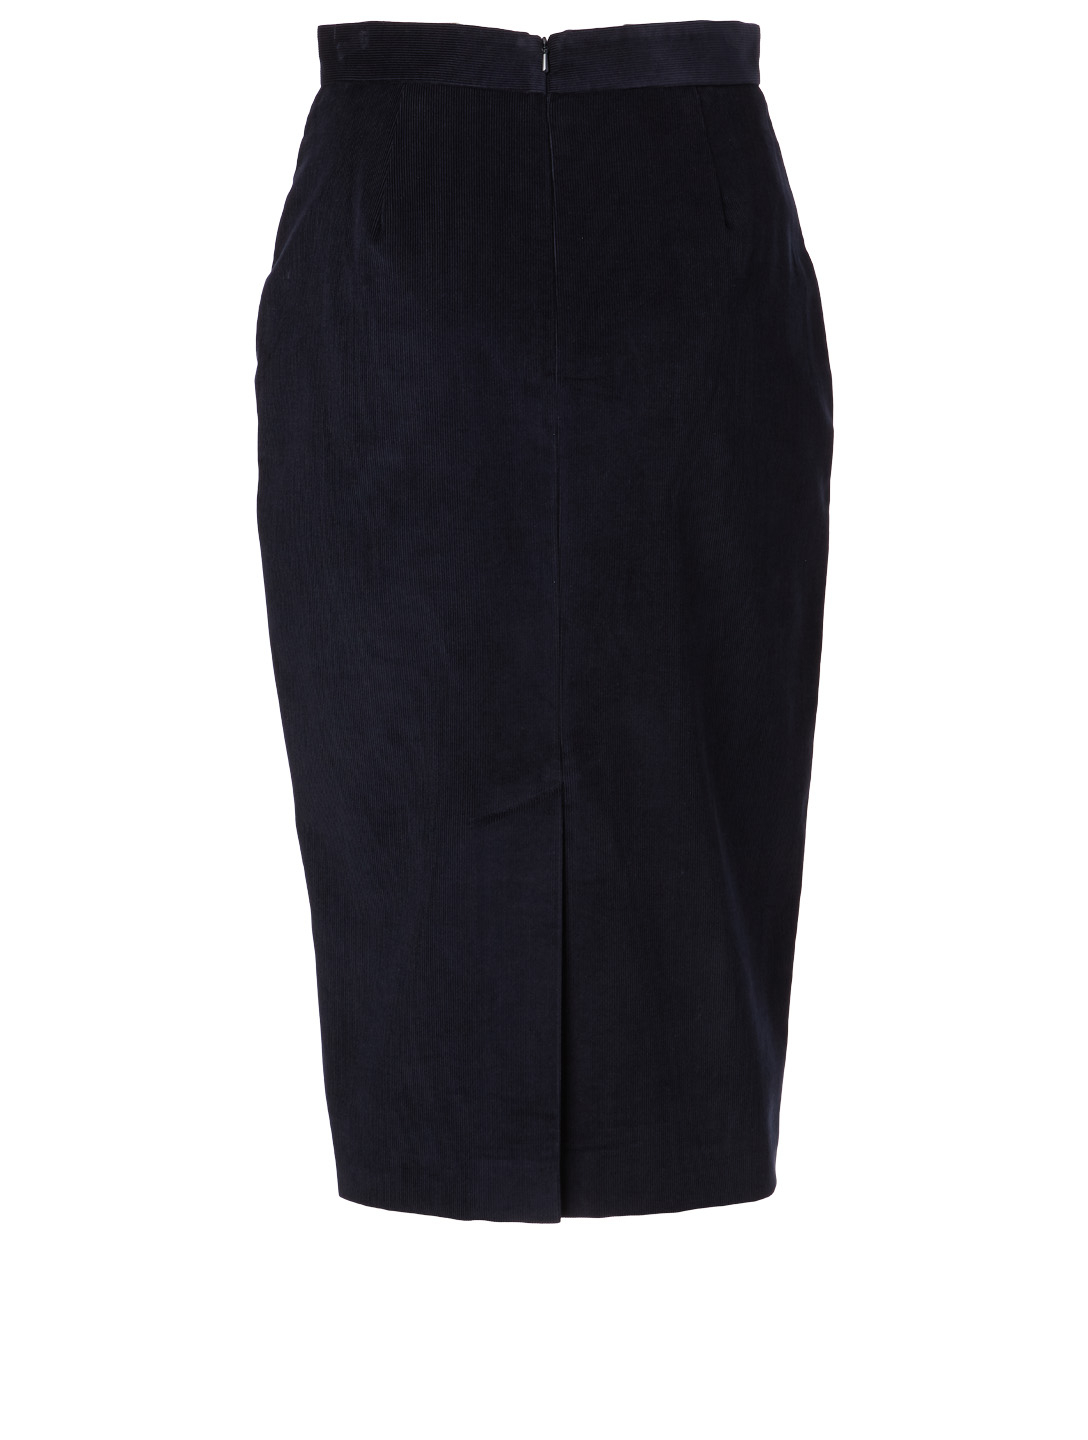 MAX MARA Cotton Velvet Pencil Skirt Women's Blue